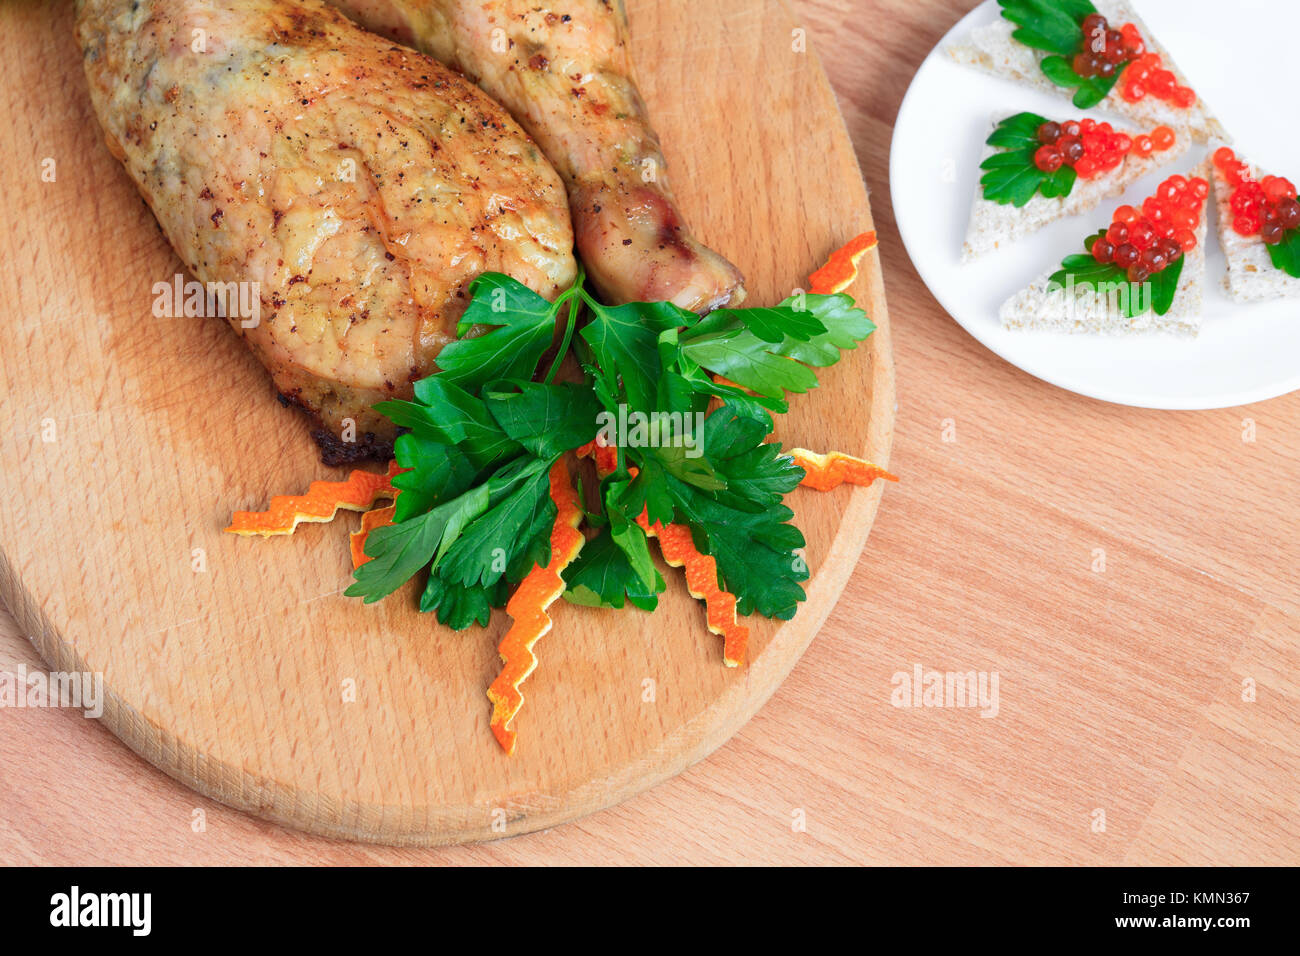 Fried chicken legs with parsley and red caviar - Stock Image